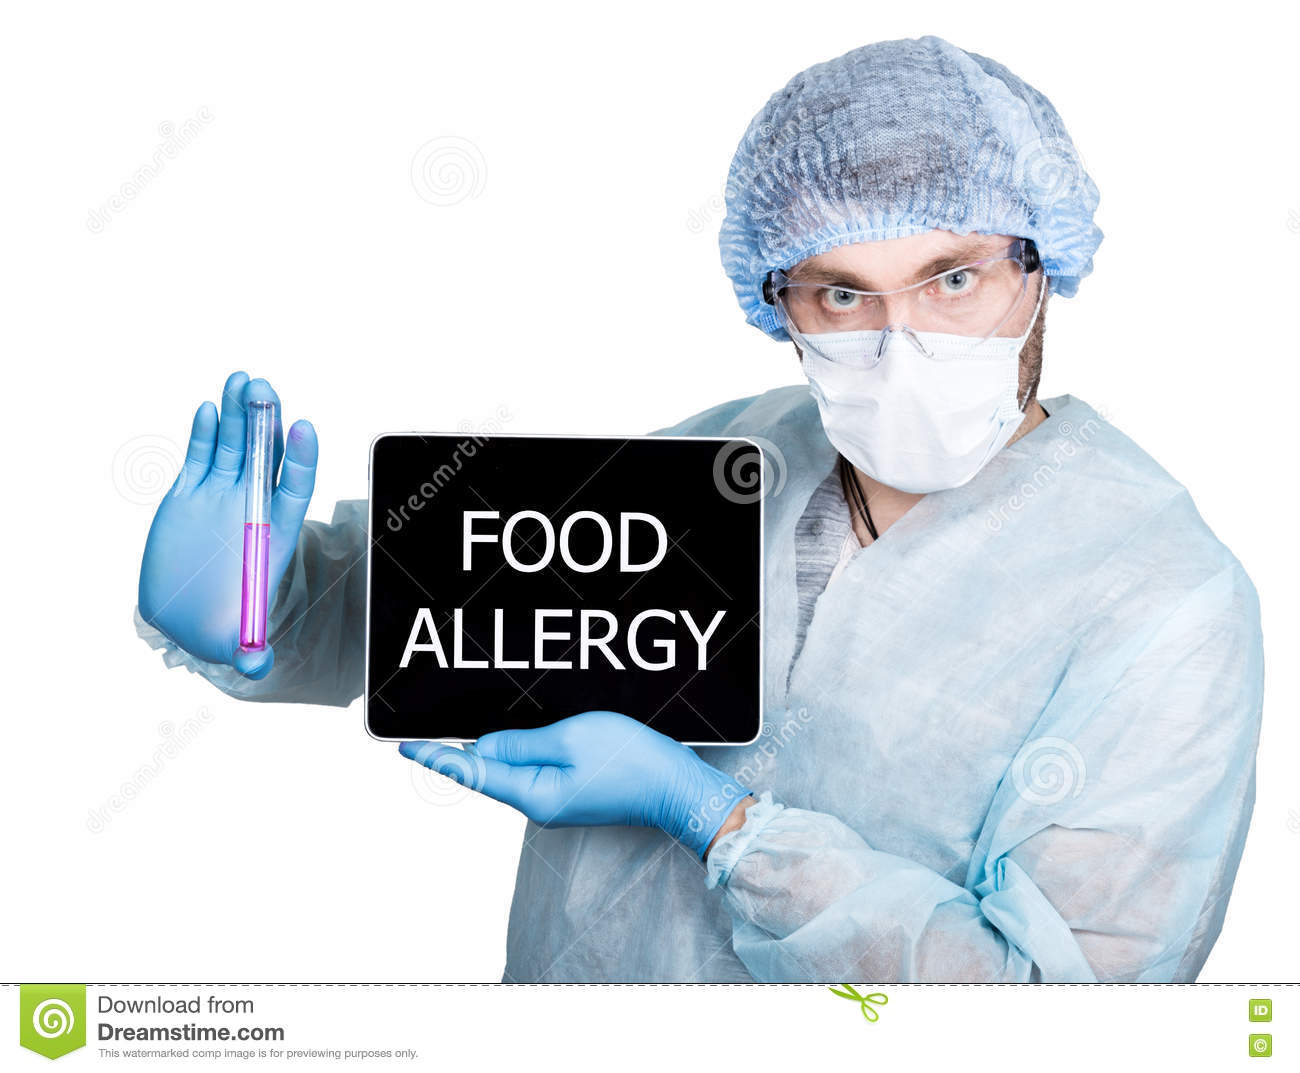 Doctor in surgical uniform, holding test tube and digital tablet pc with food allergy sign. internet technology and